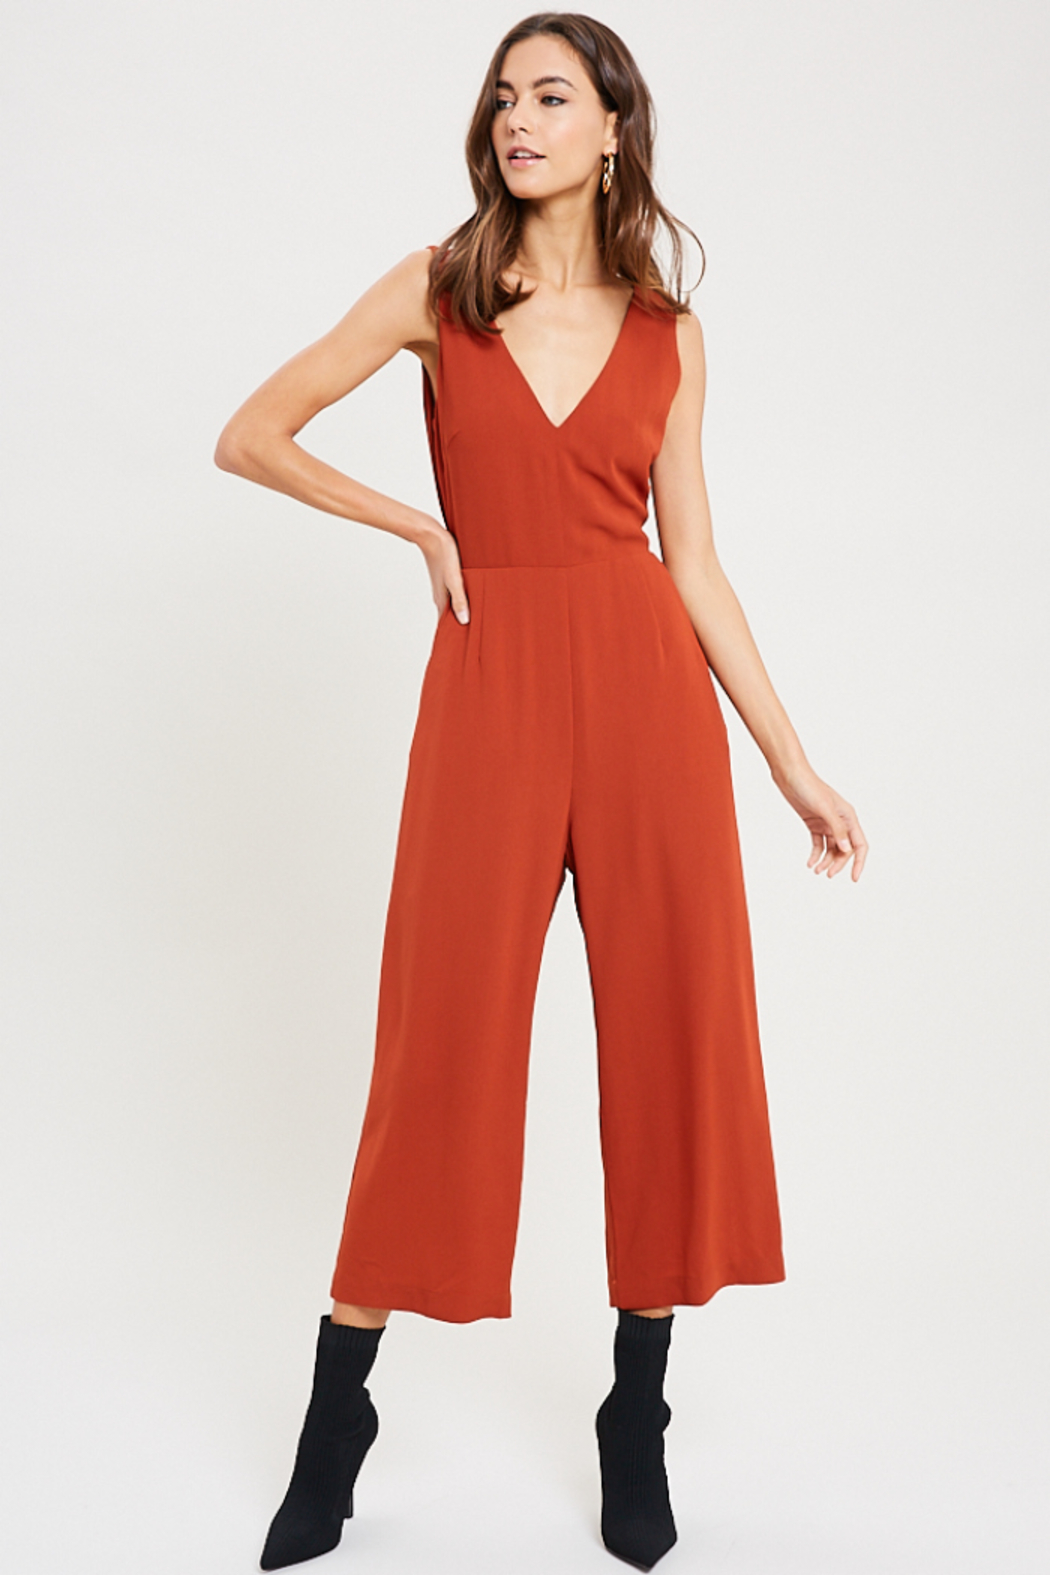 Wishlist Juniper Tie Back Jumpsuit - Main Image